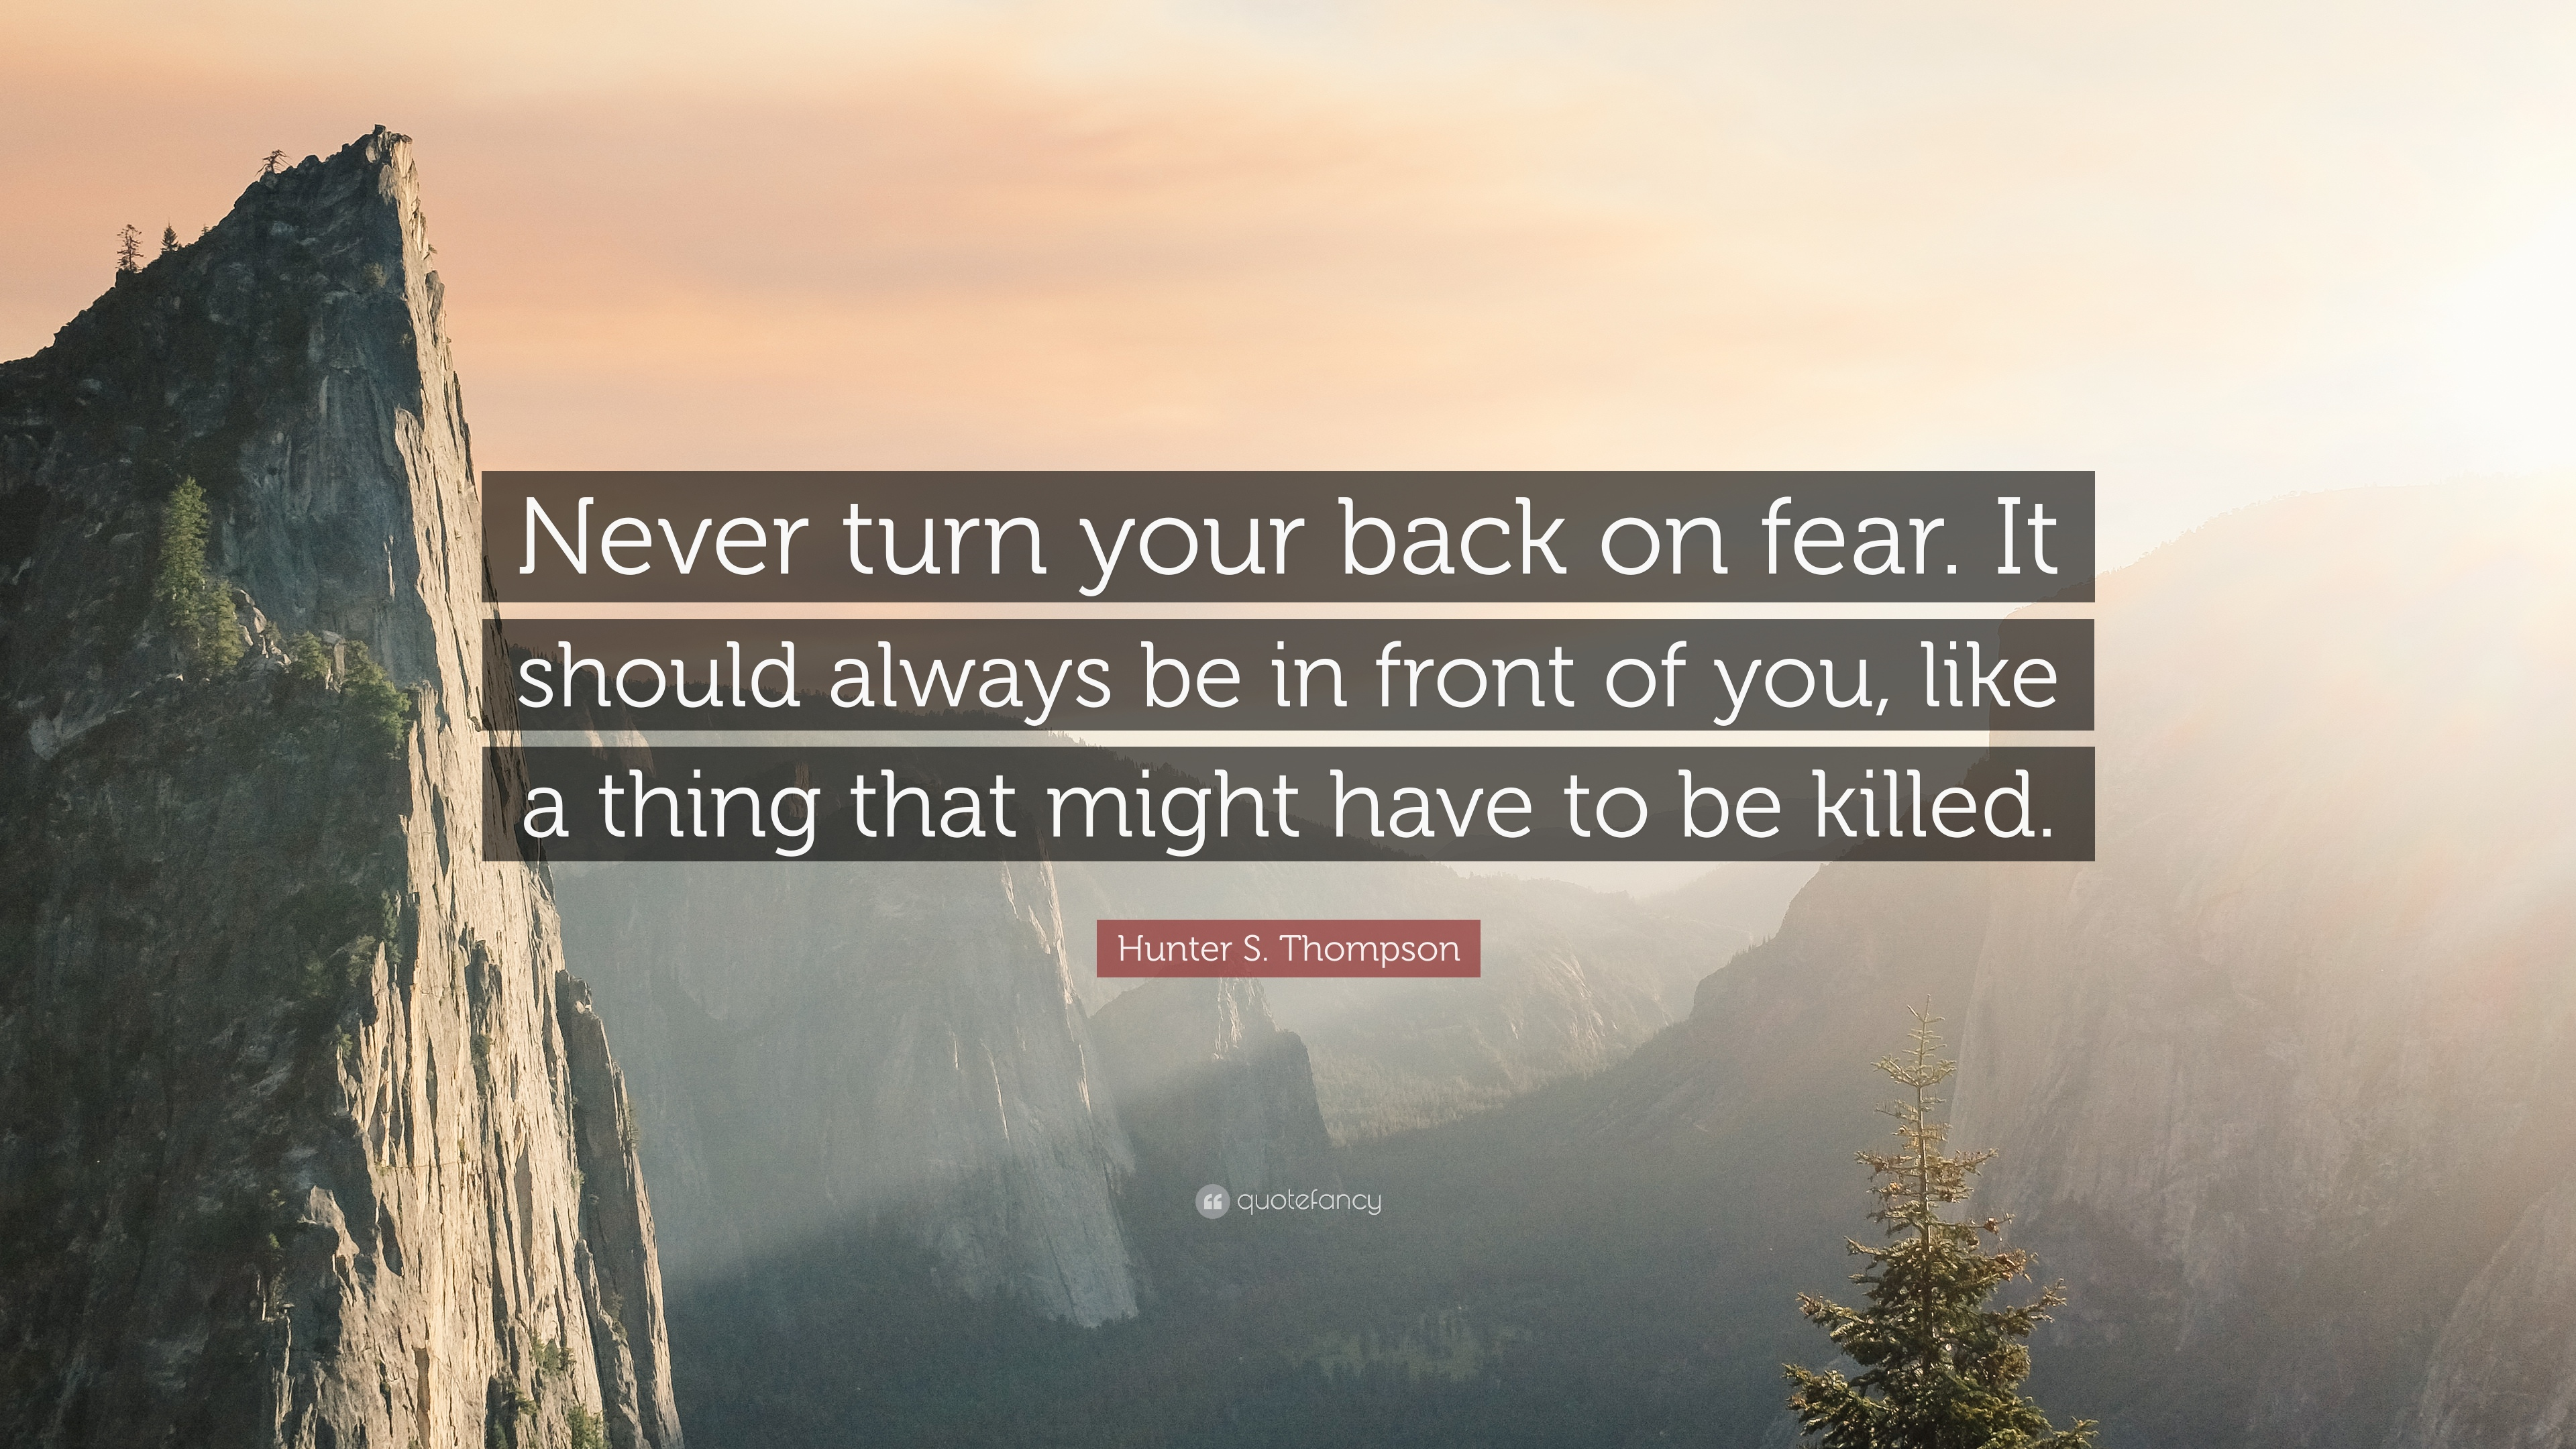 Thought Provoking Quotes Wallpapers Hunter S Thompson Quote Never Turn Your Back On Fear